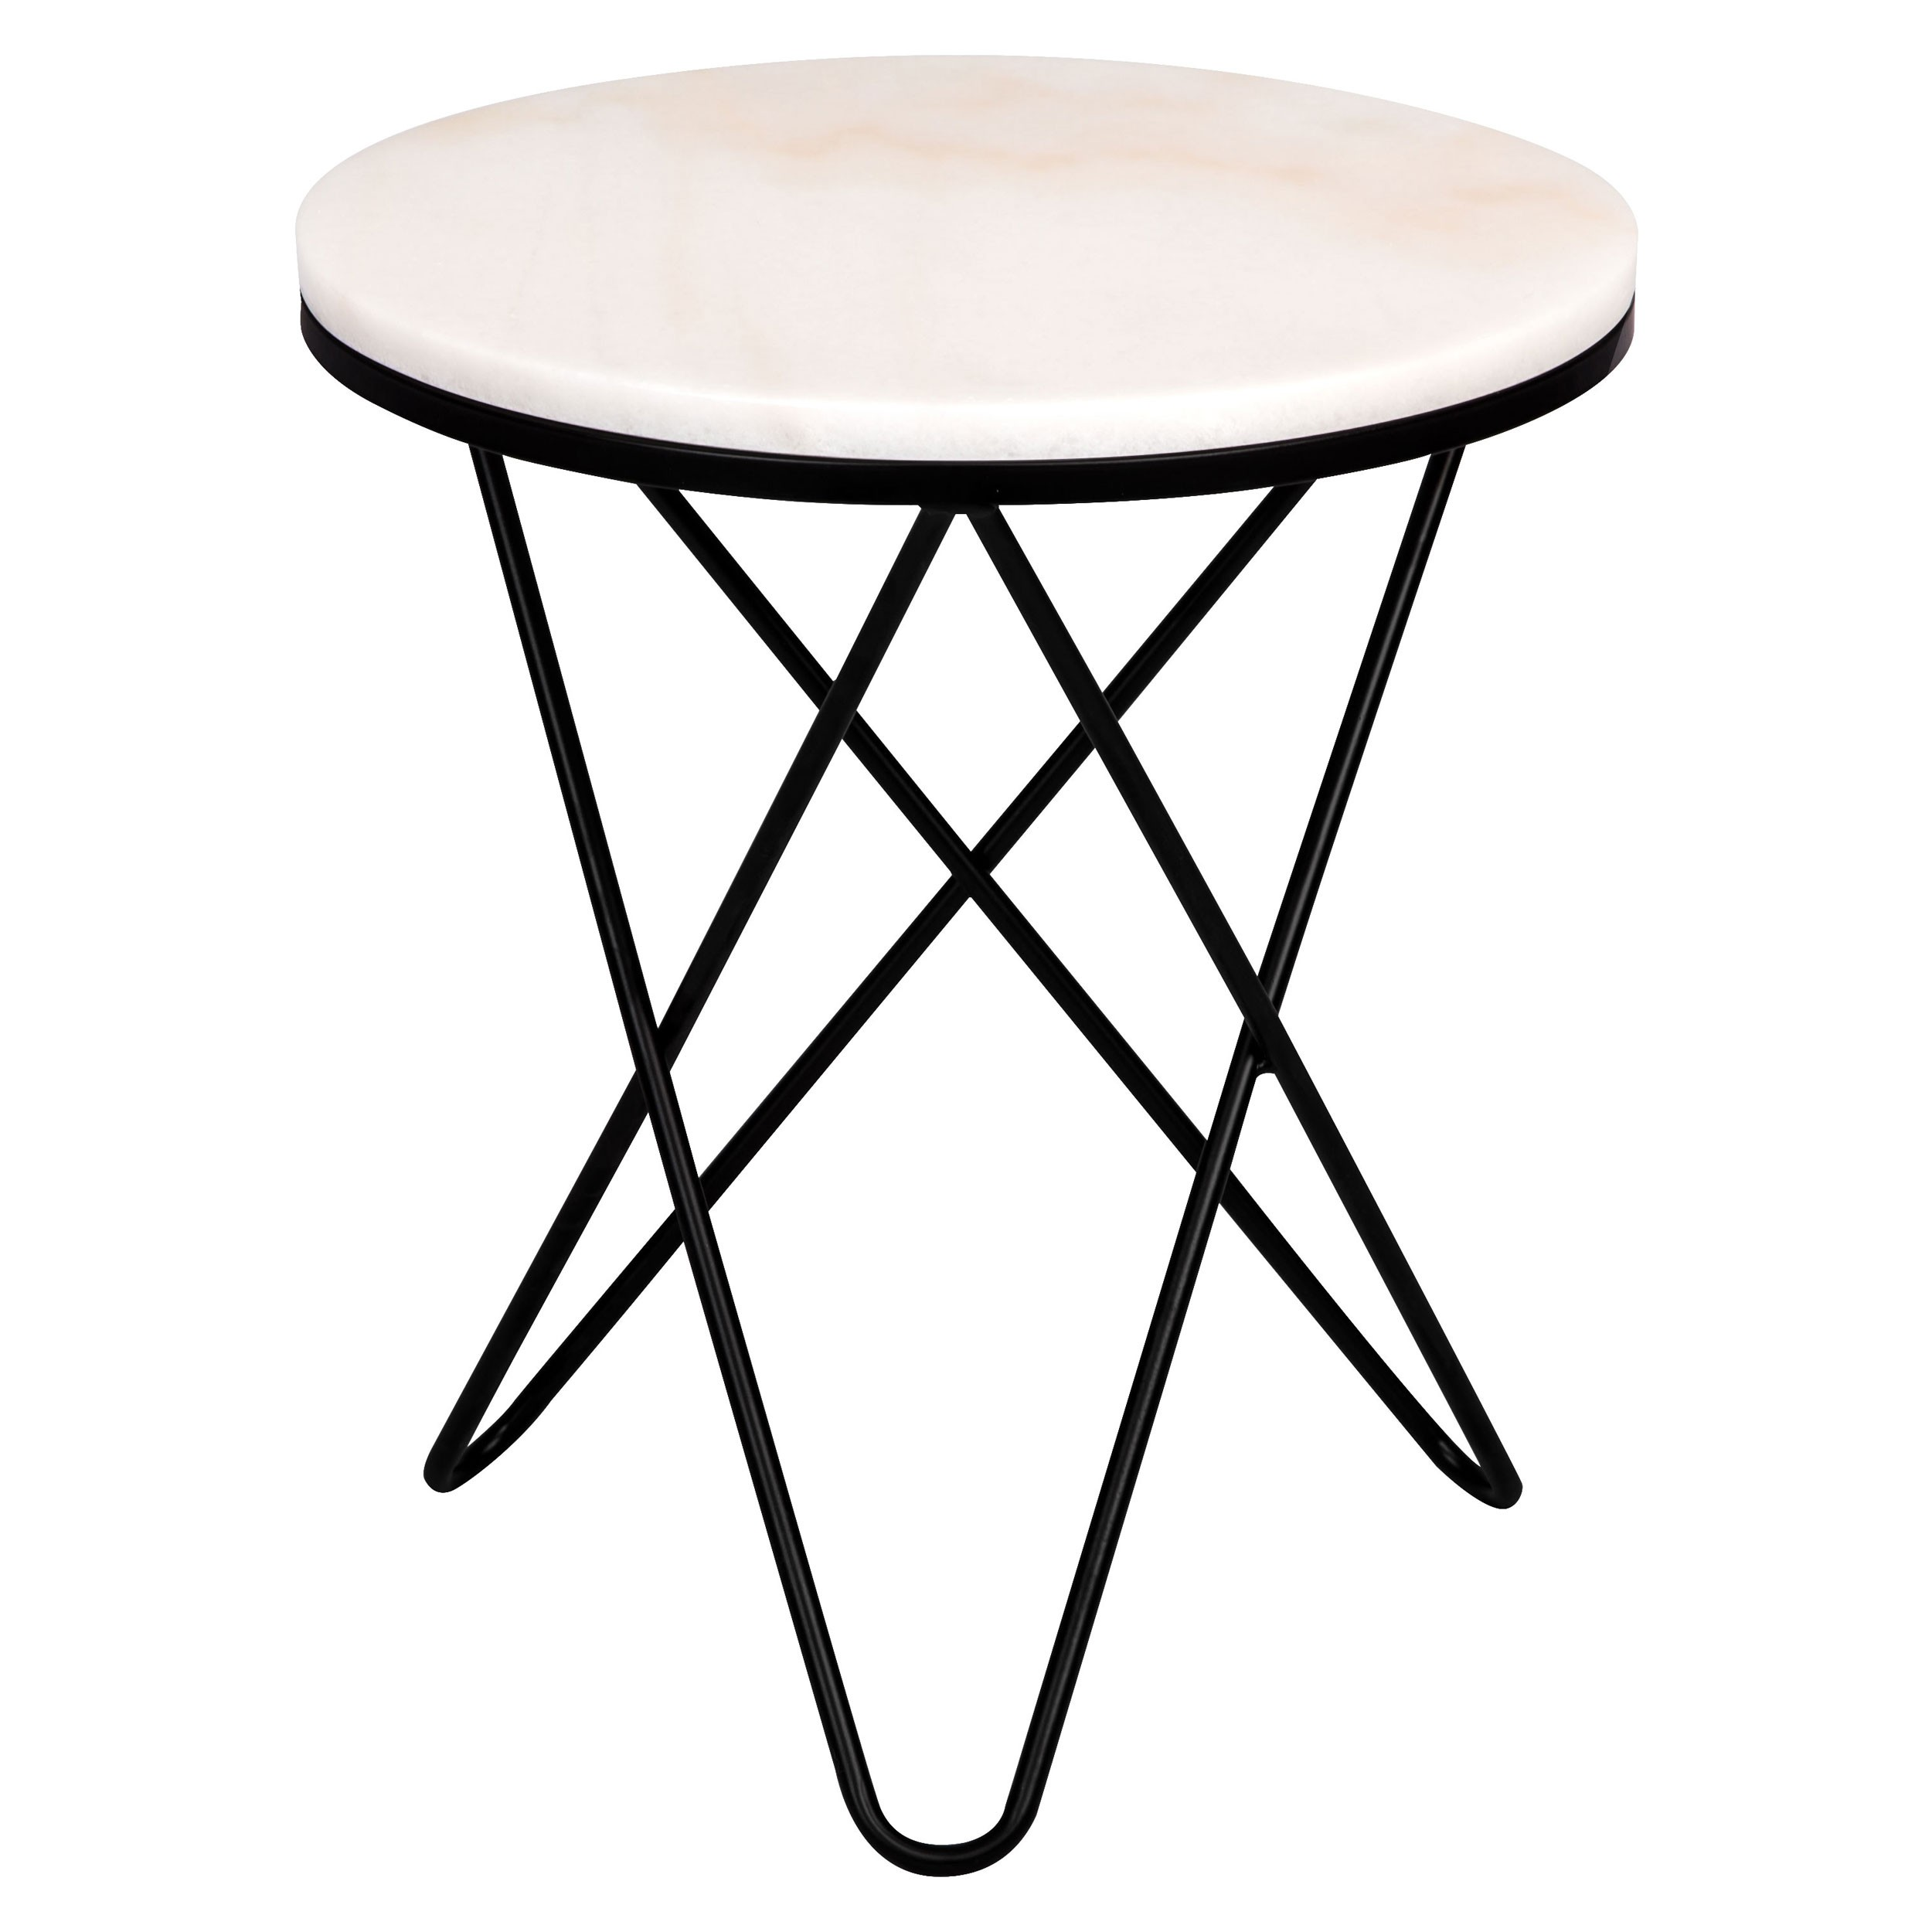 Table Salon Ronde Blanche table d'appoint ronde oda marbre blanche